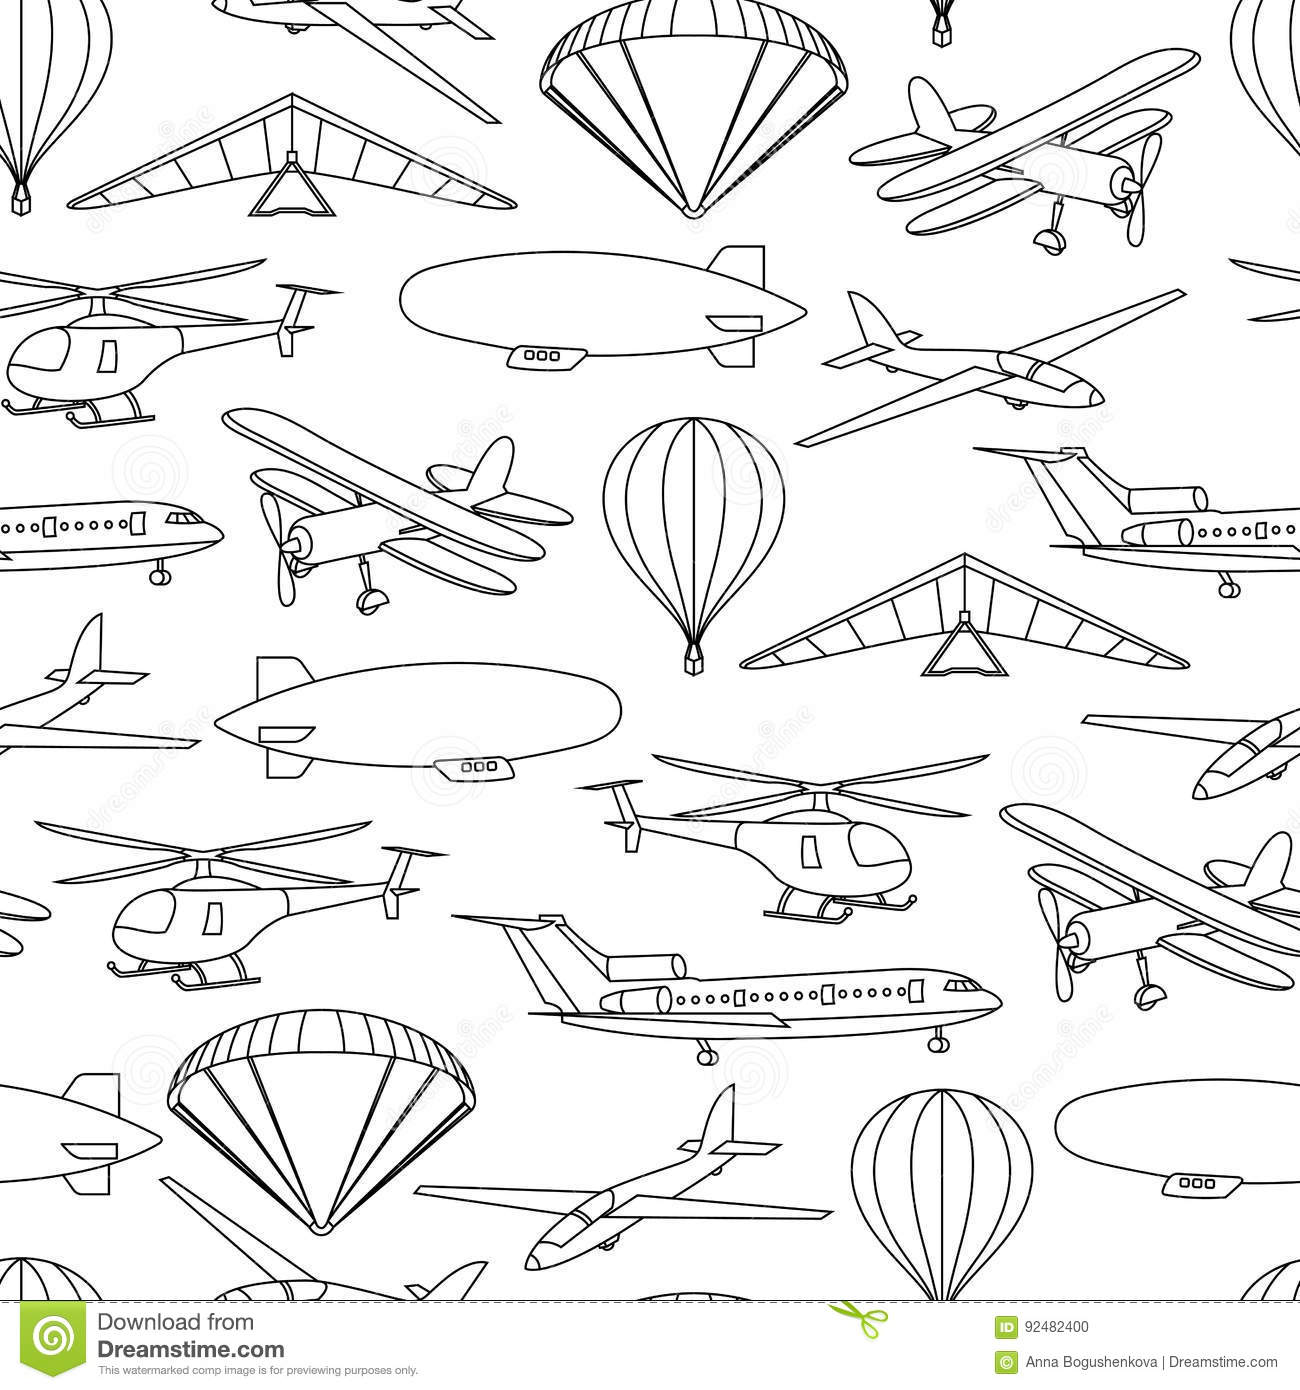 Retro seamless travel pattern of balloons and aircraft